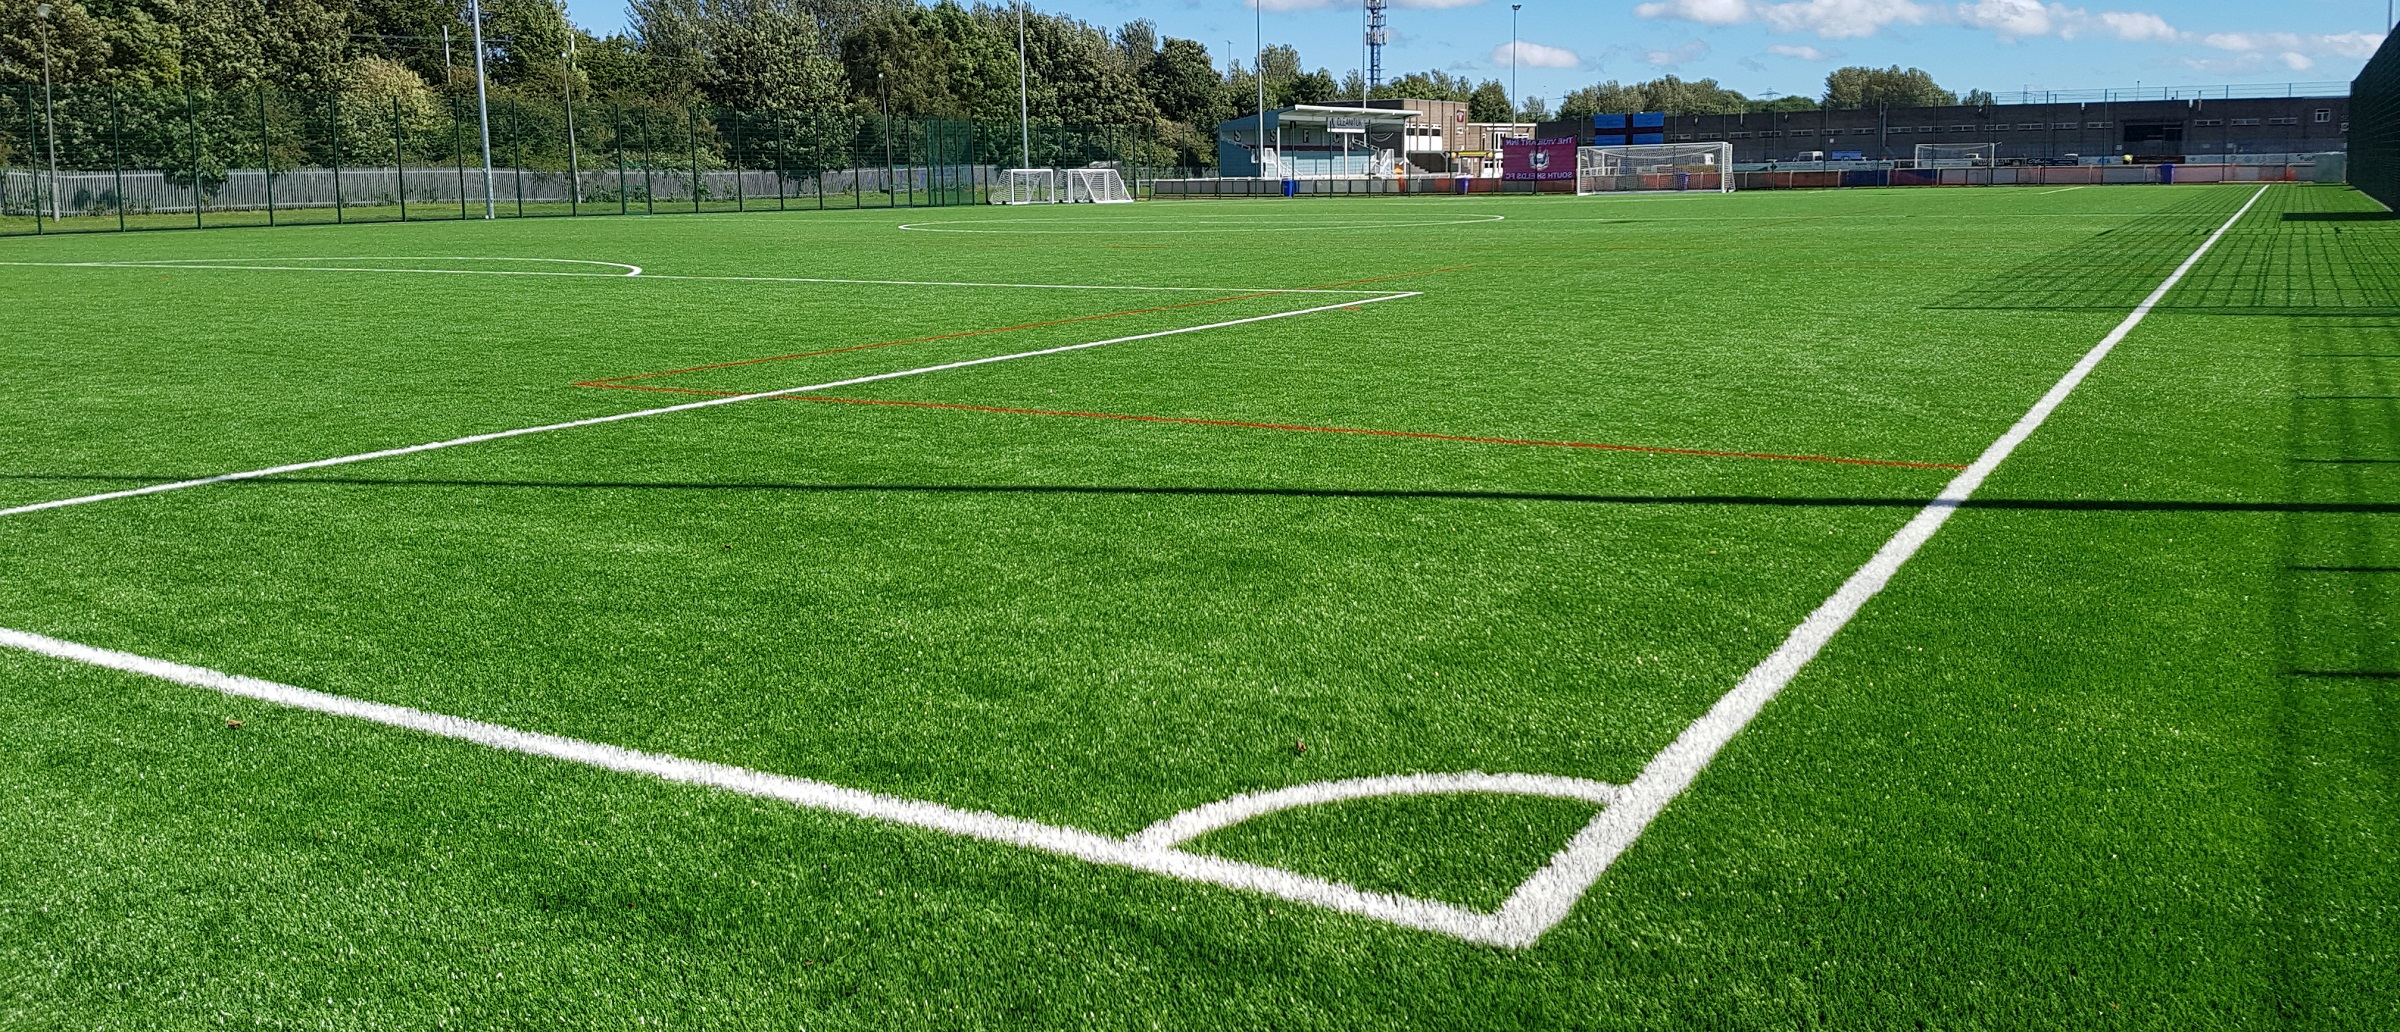 Football fundraiser to take place at Mariners Park